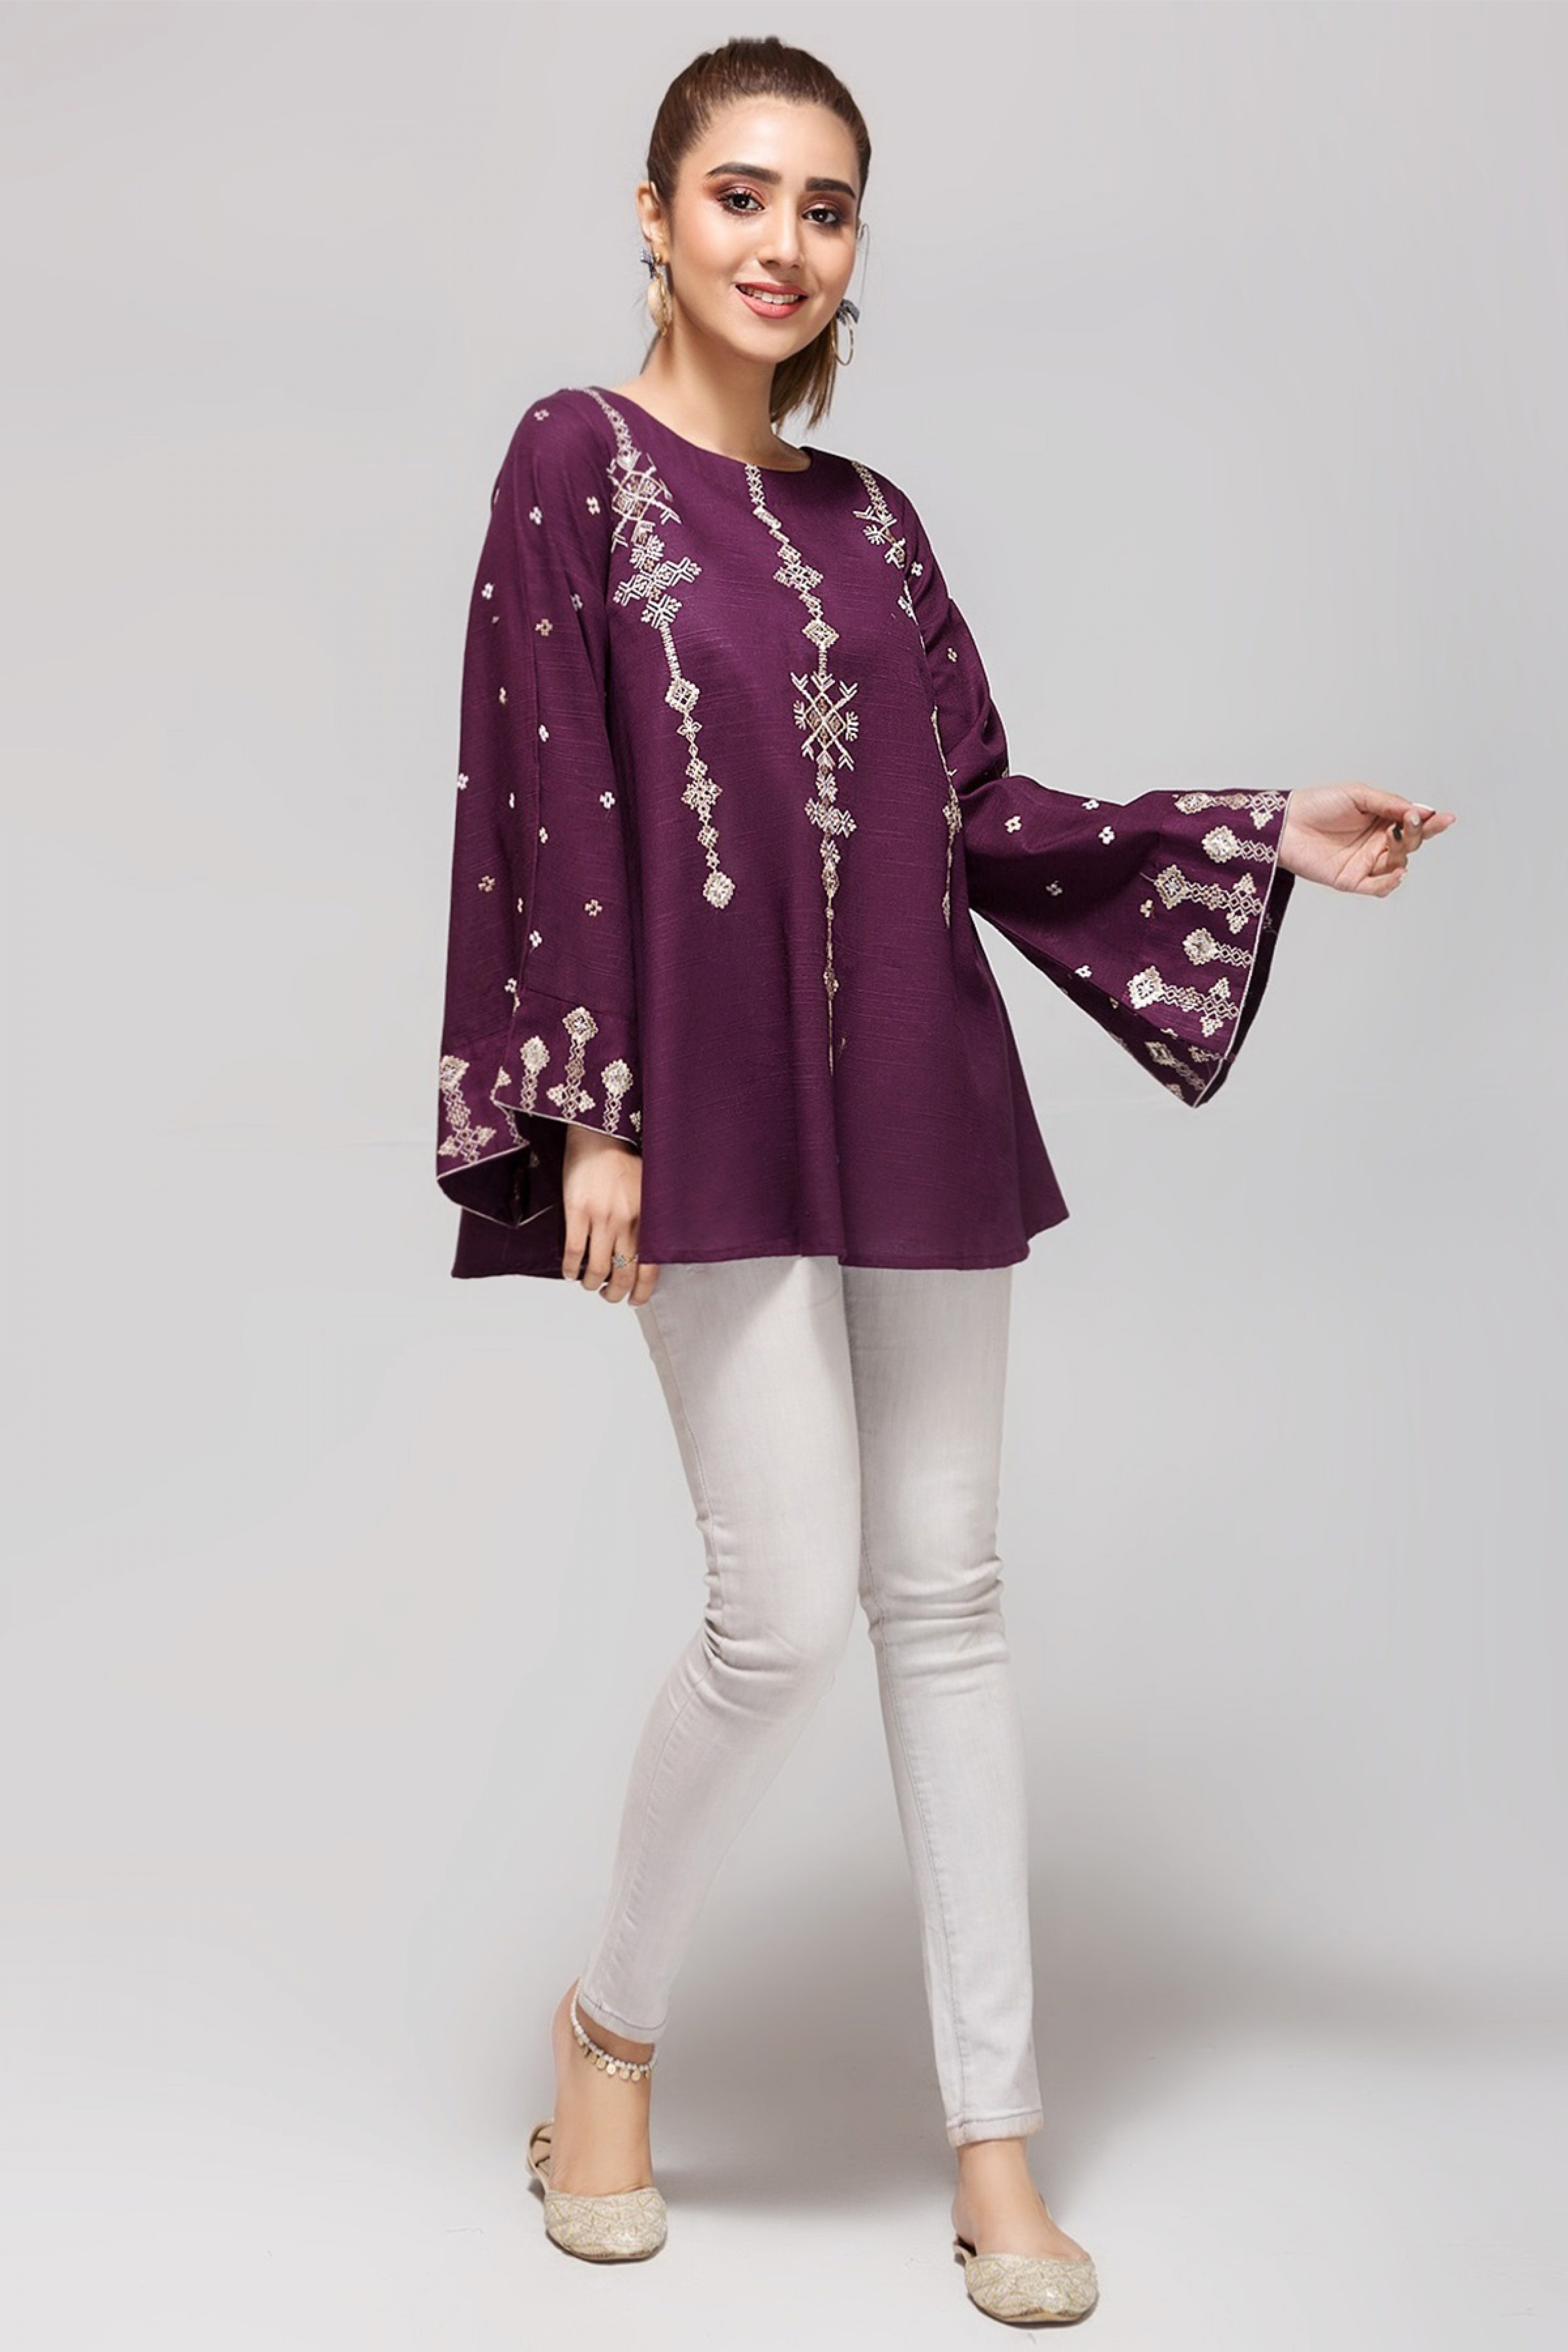 LAVENDER TOUCH(Embroidered Top)